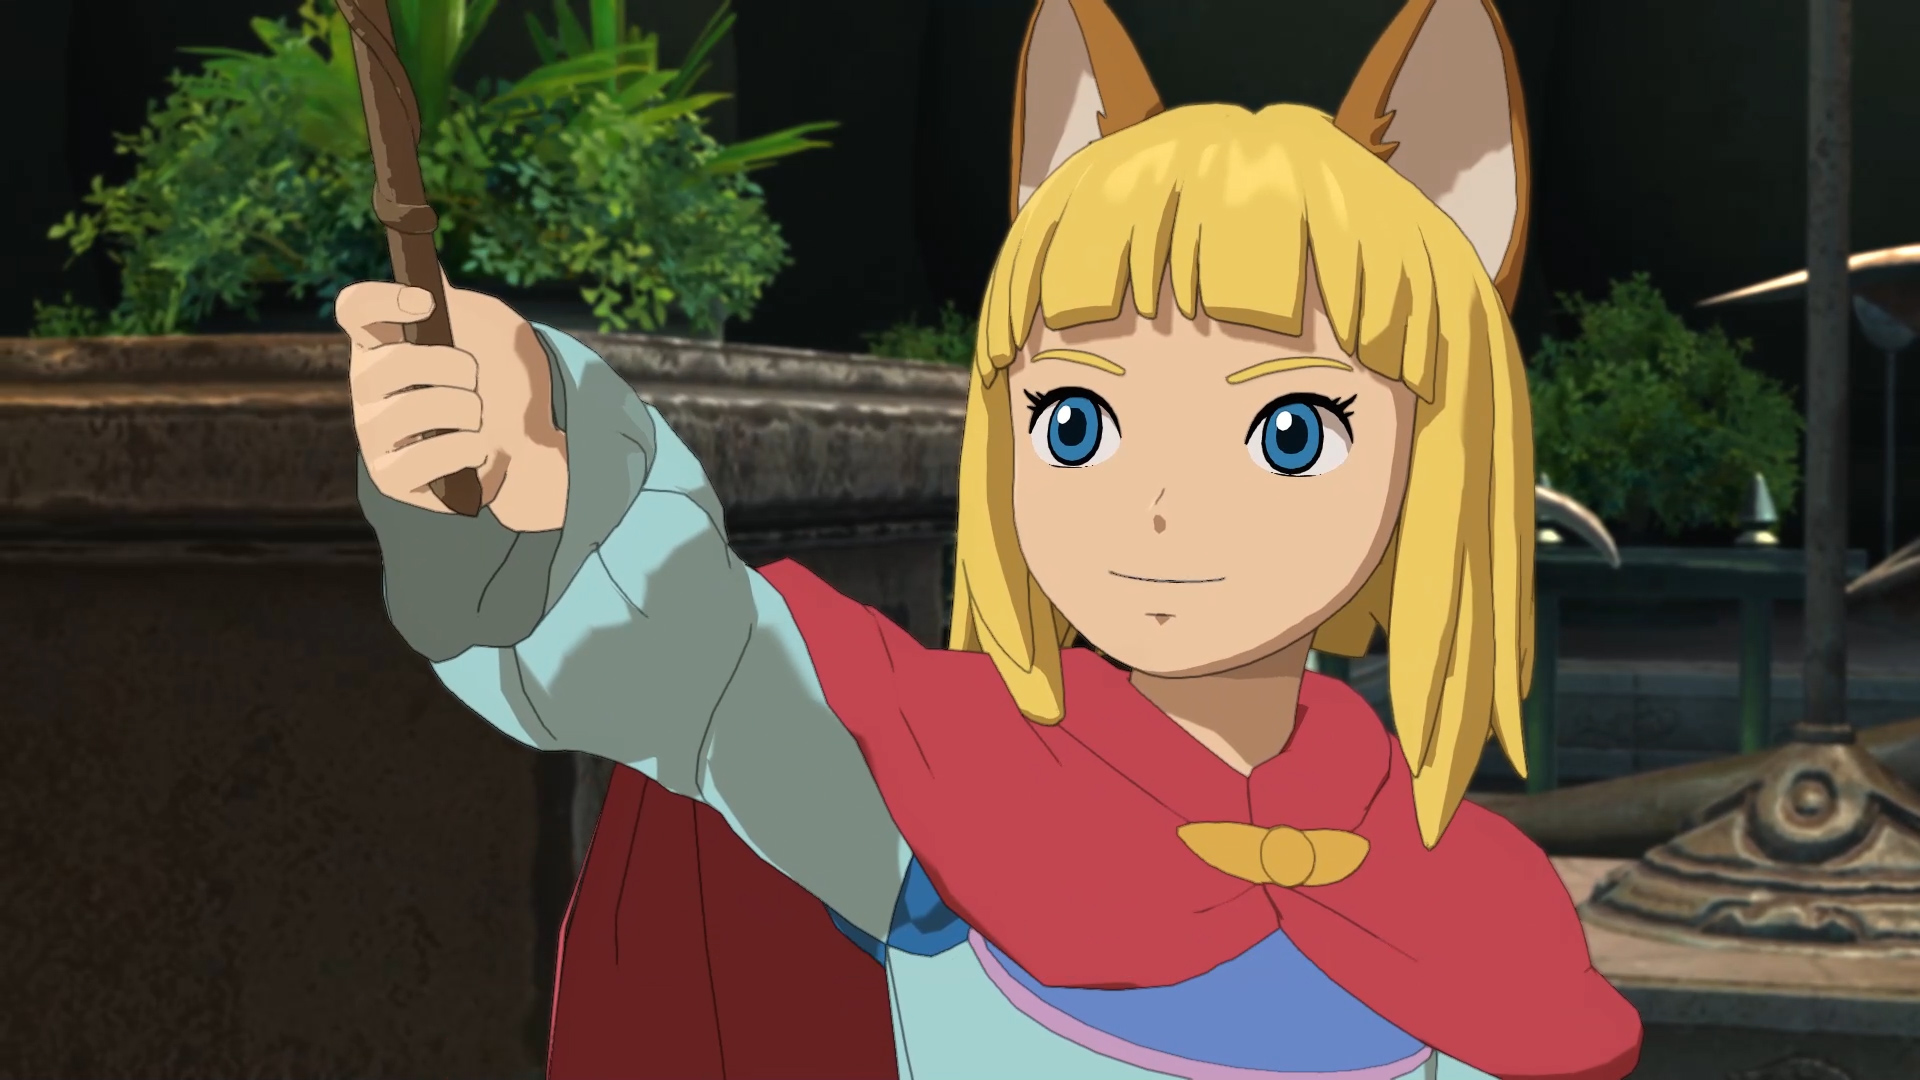 Ni no Kuni 2 reveals 'The Lair of the Lost Lord' DLC, due in 2018